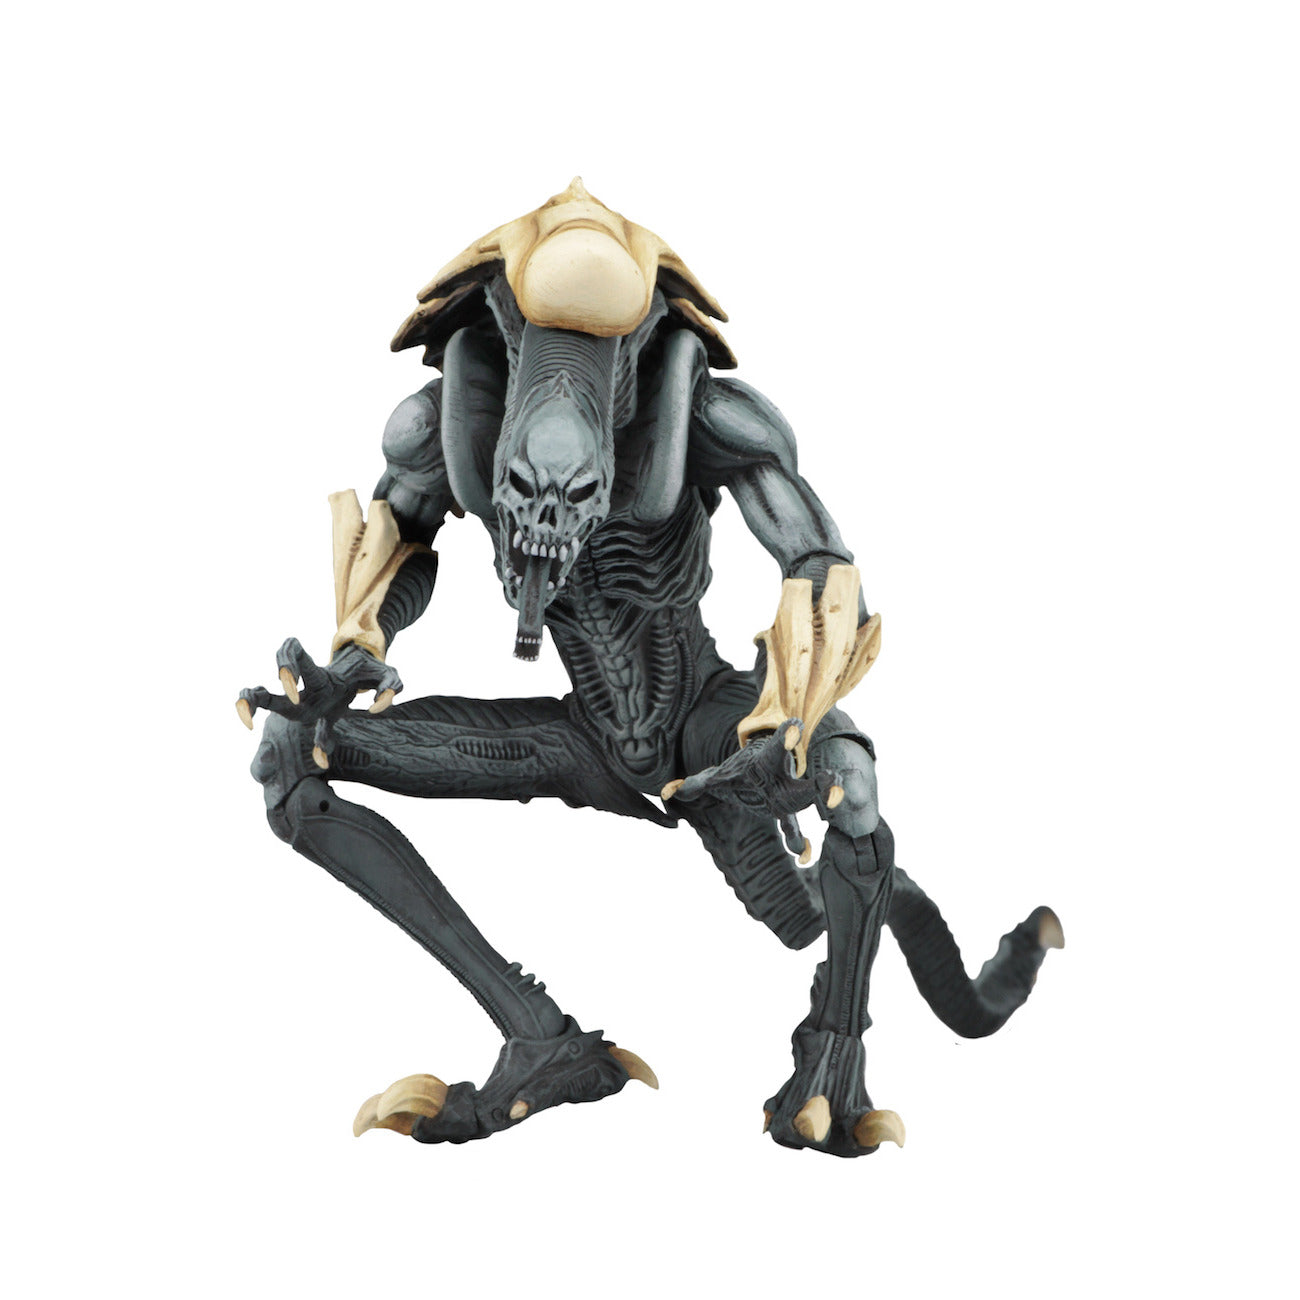 Alien vs. Predator Chrysalis Alien 7 inch Action Figure